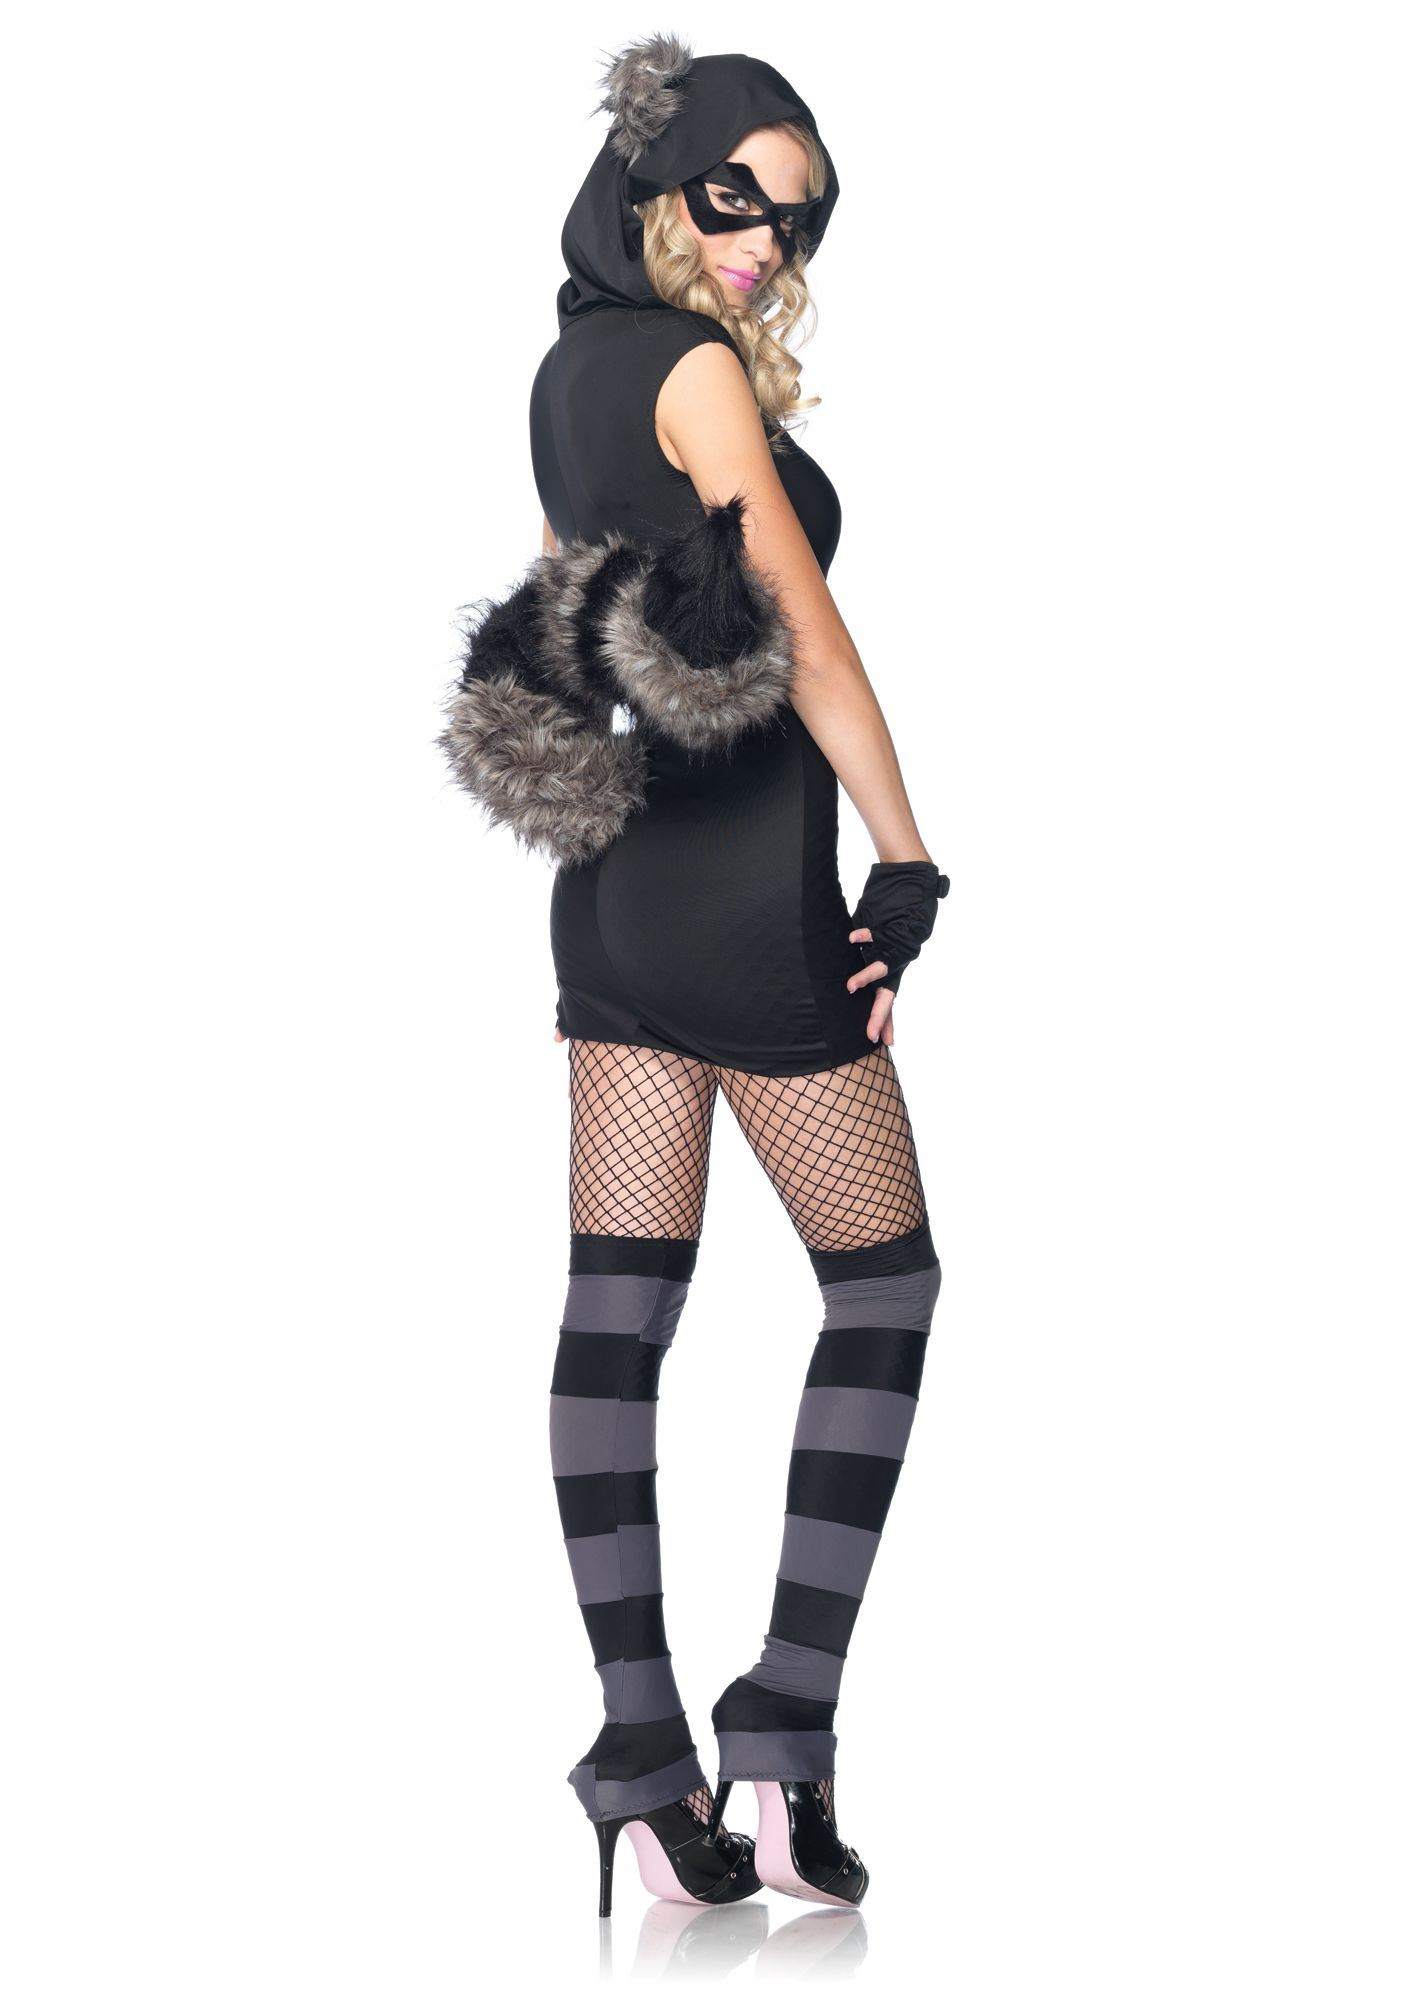 Adult Risky Raccoon Woman Costume | $68.99 | The Costume Land